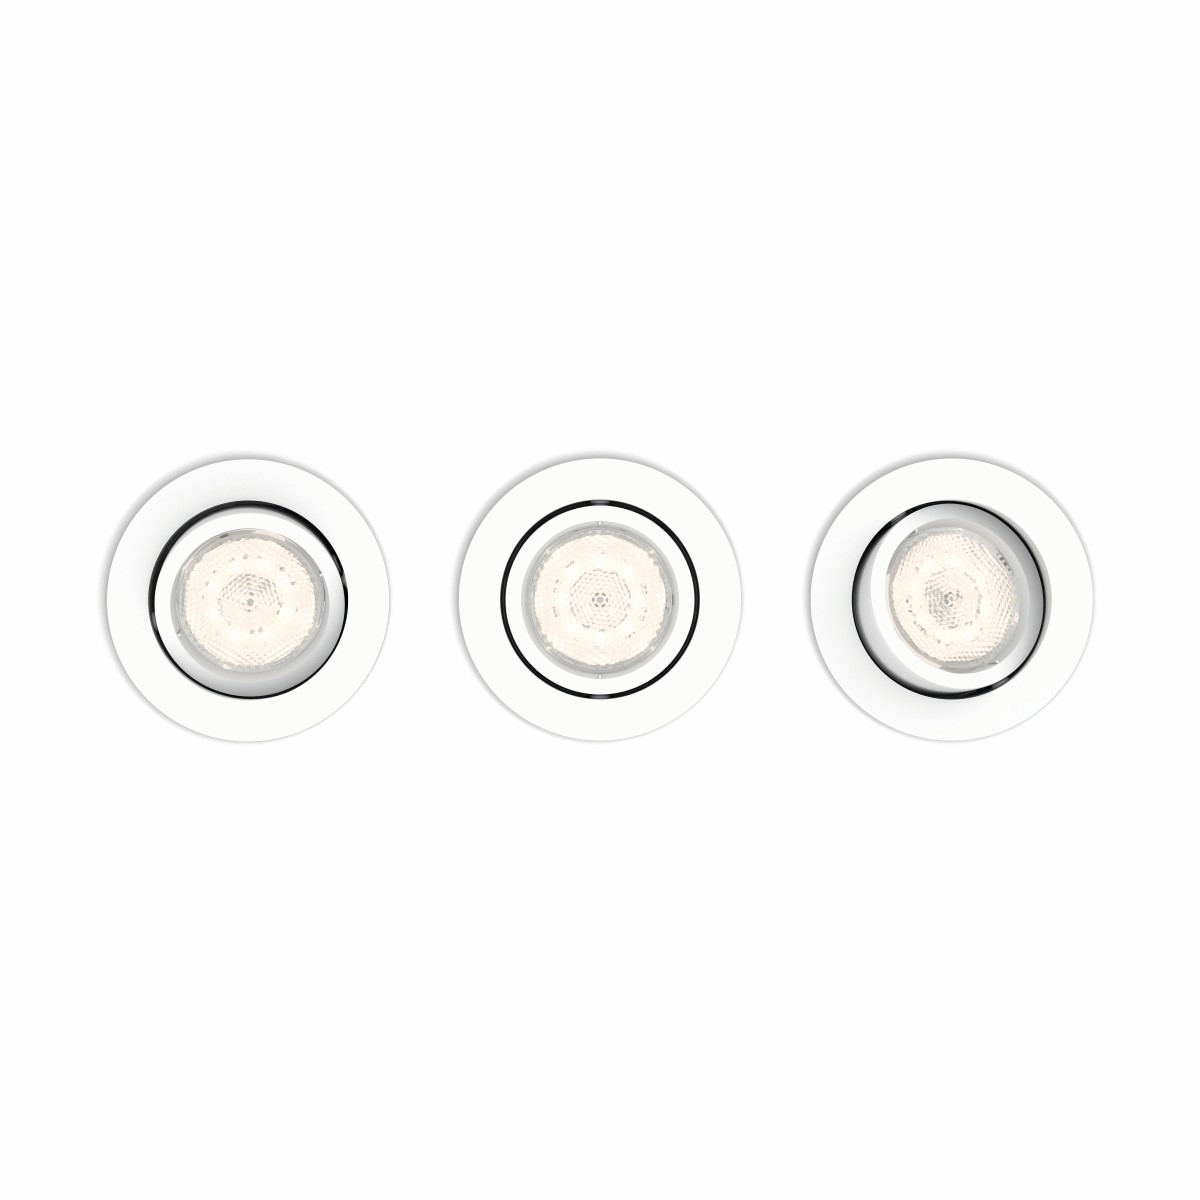 Philips Set Dimbare inbouwspots Casement (3x) Philips 5011331P0